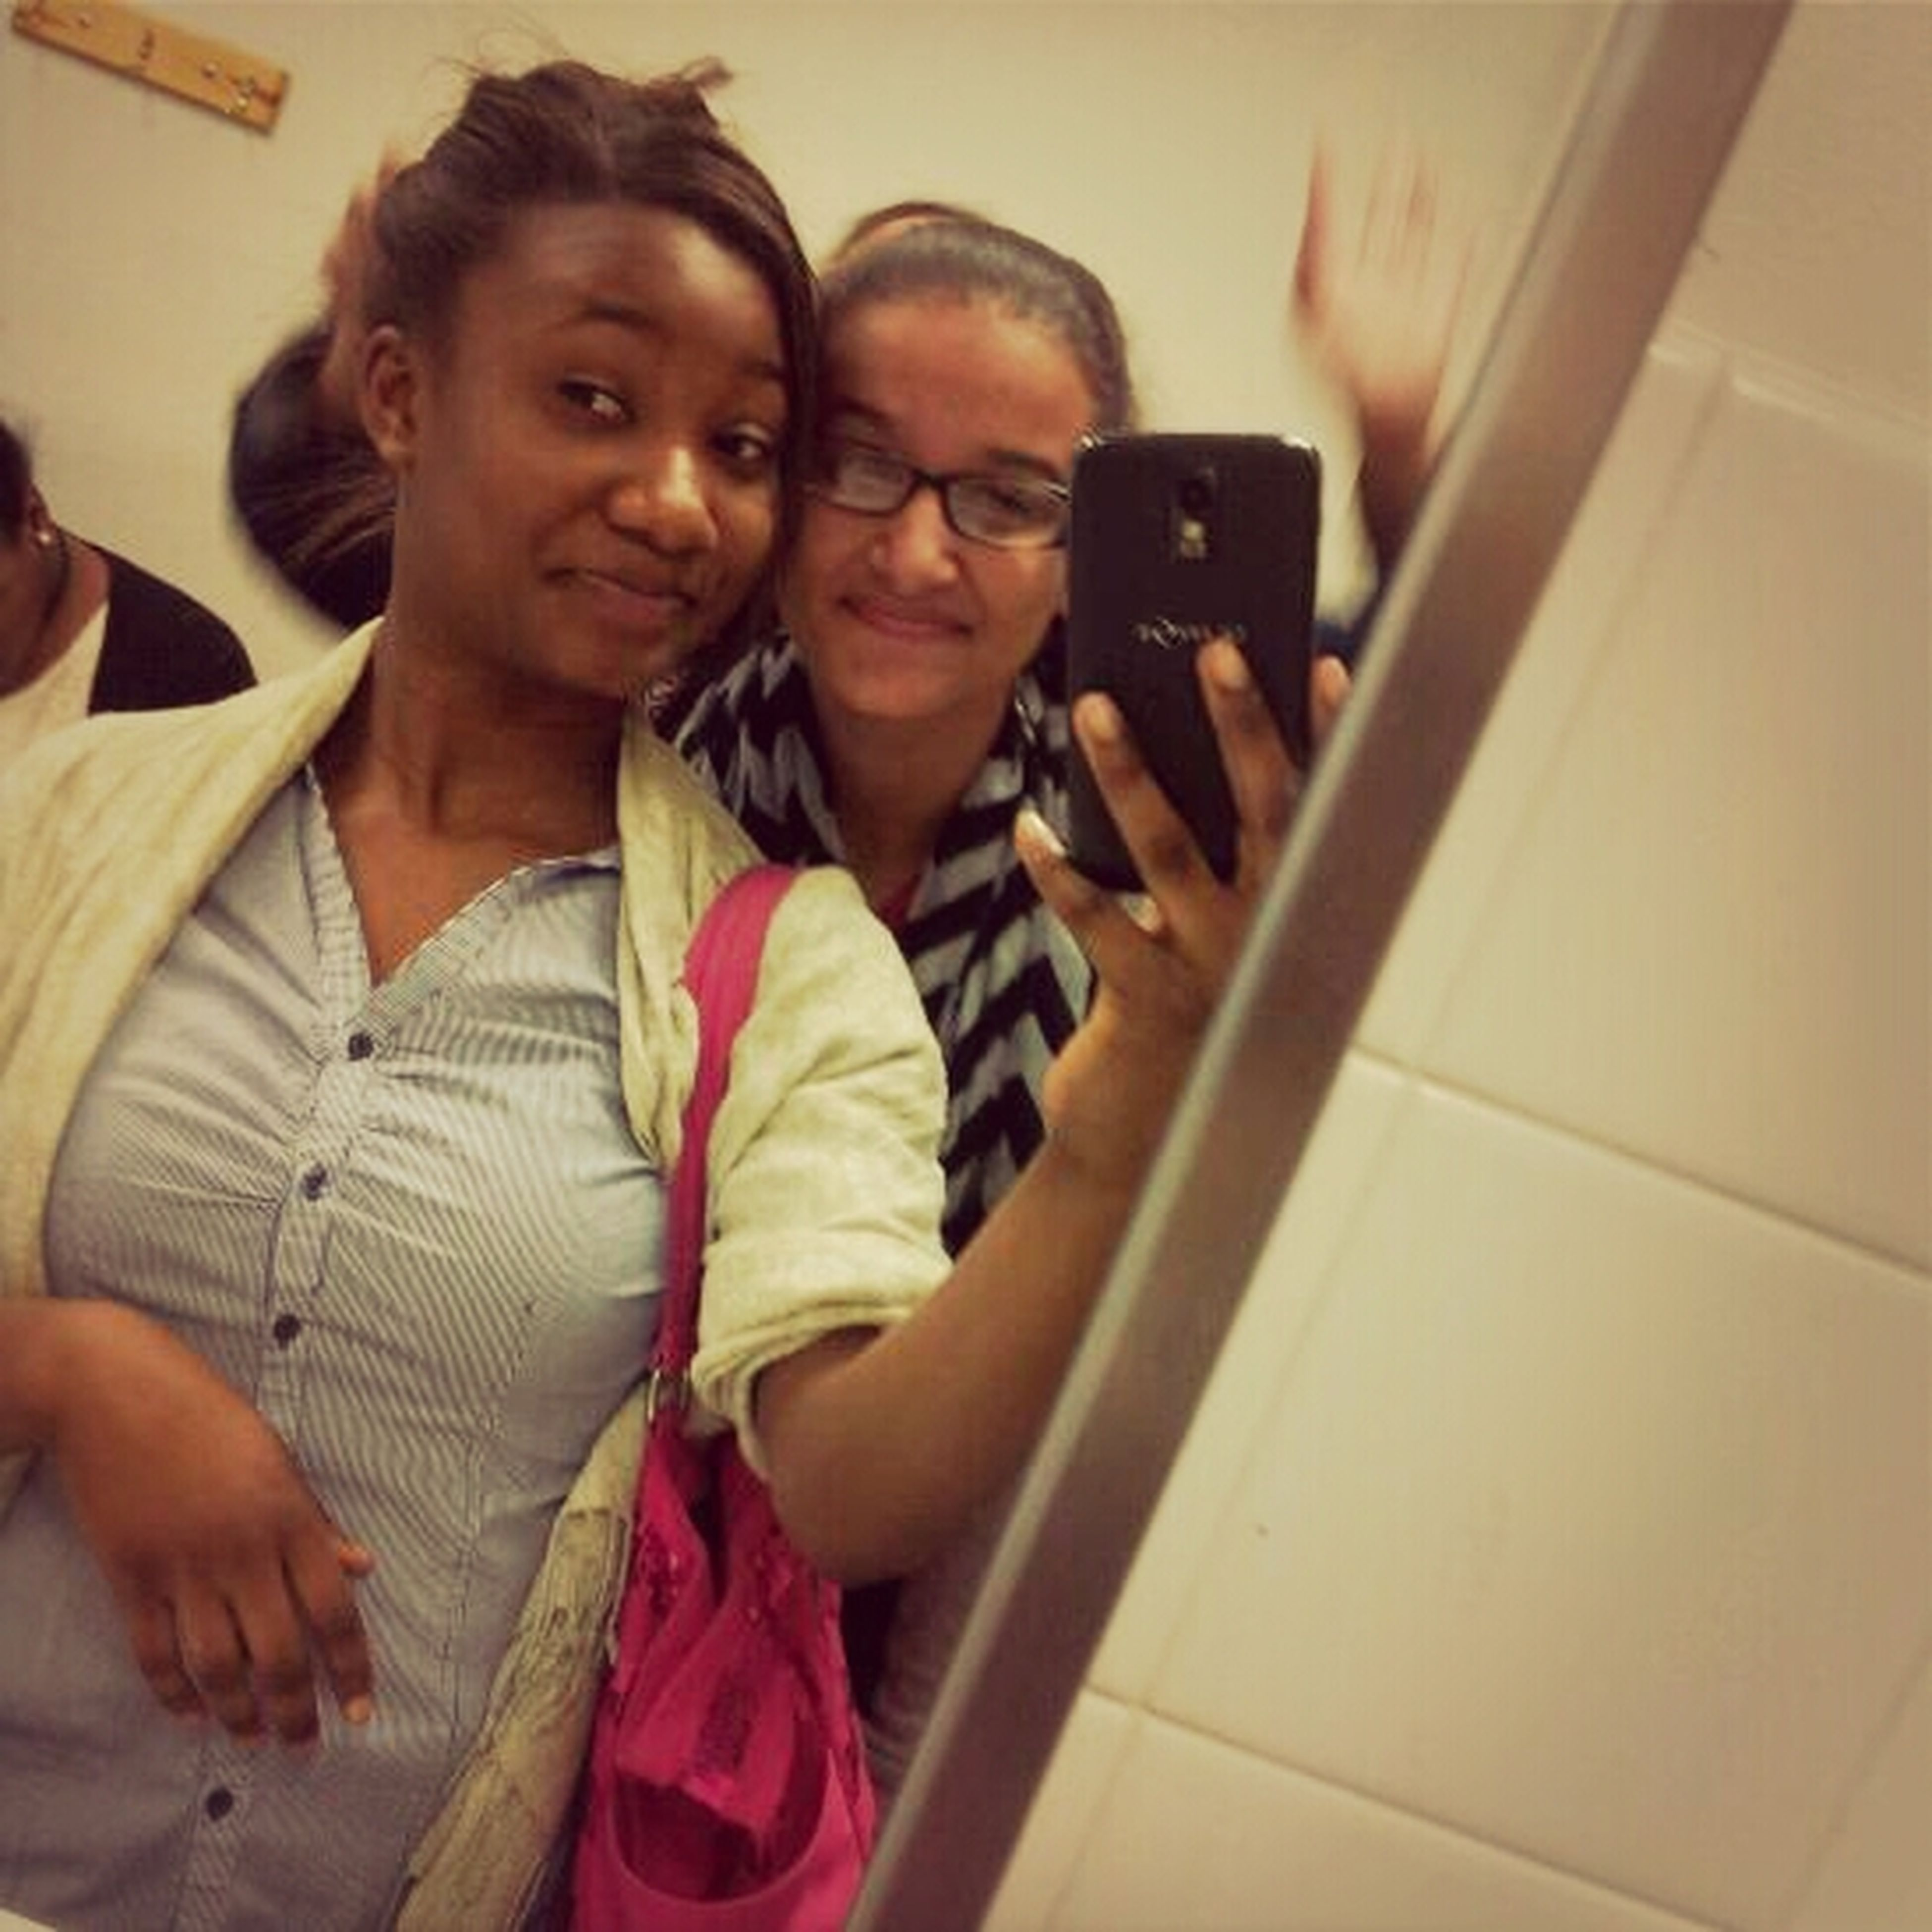 Me And Nada